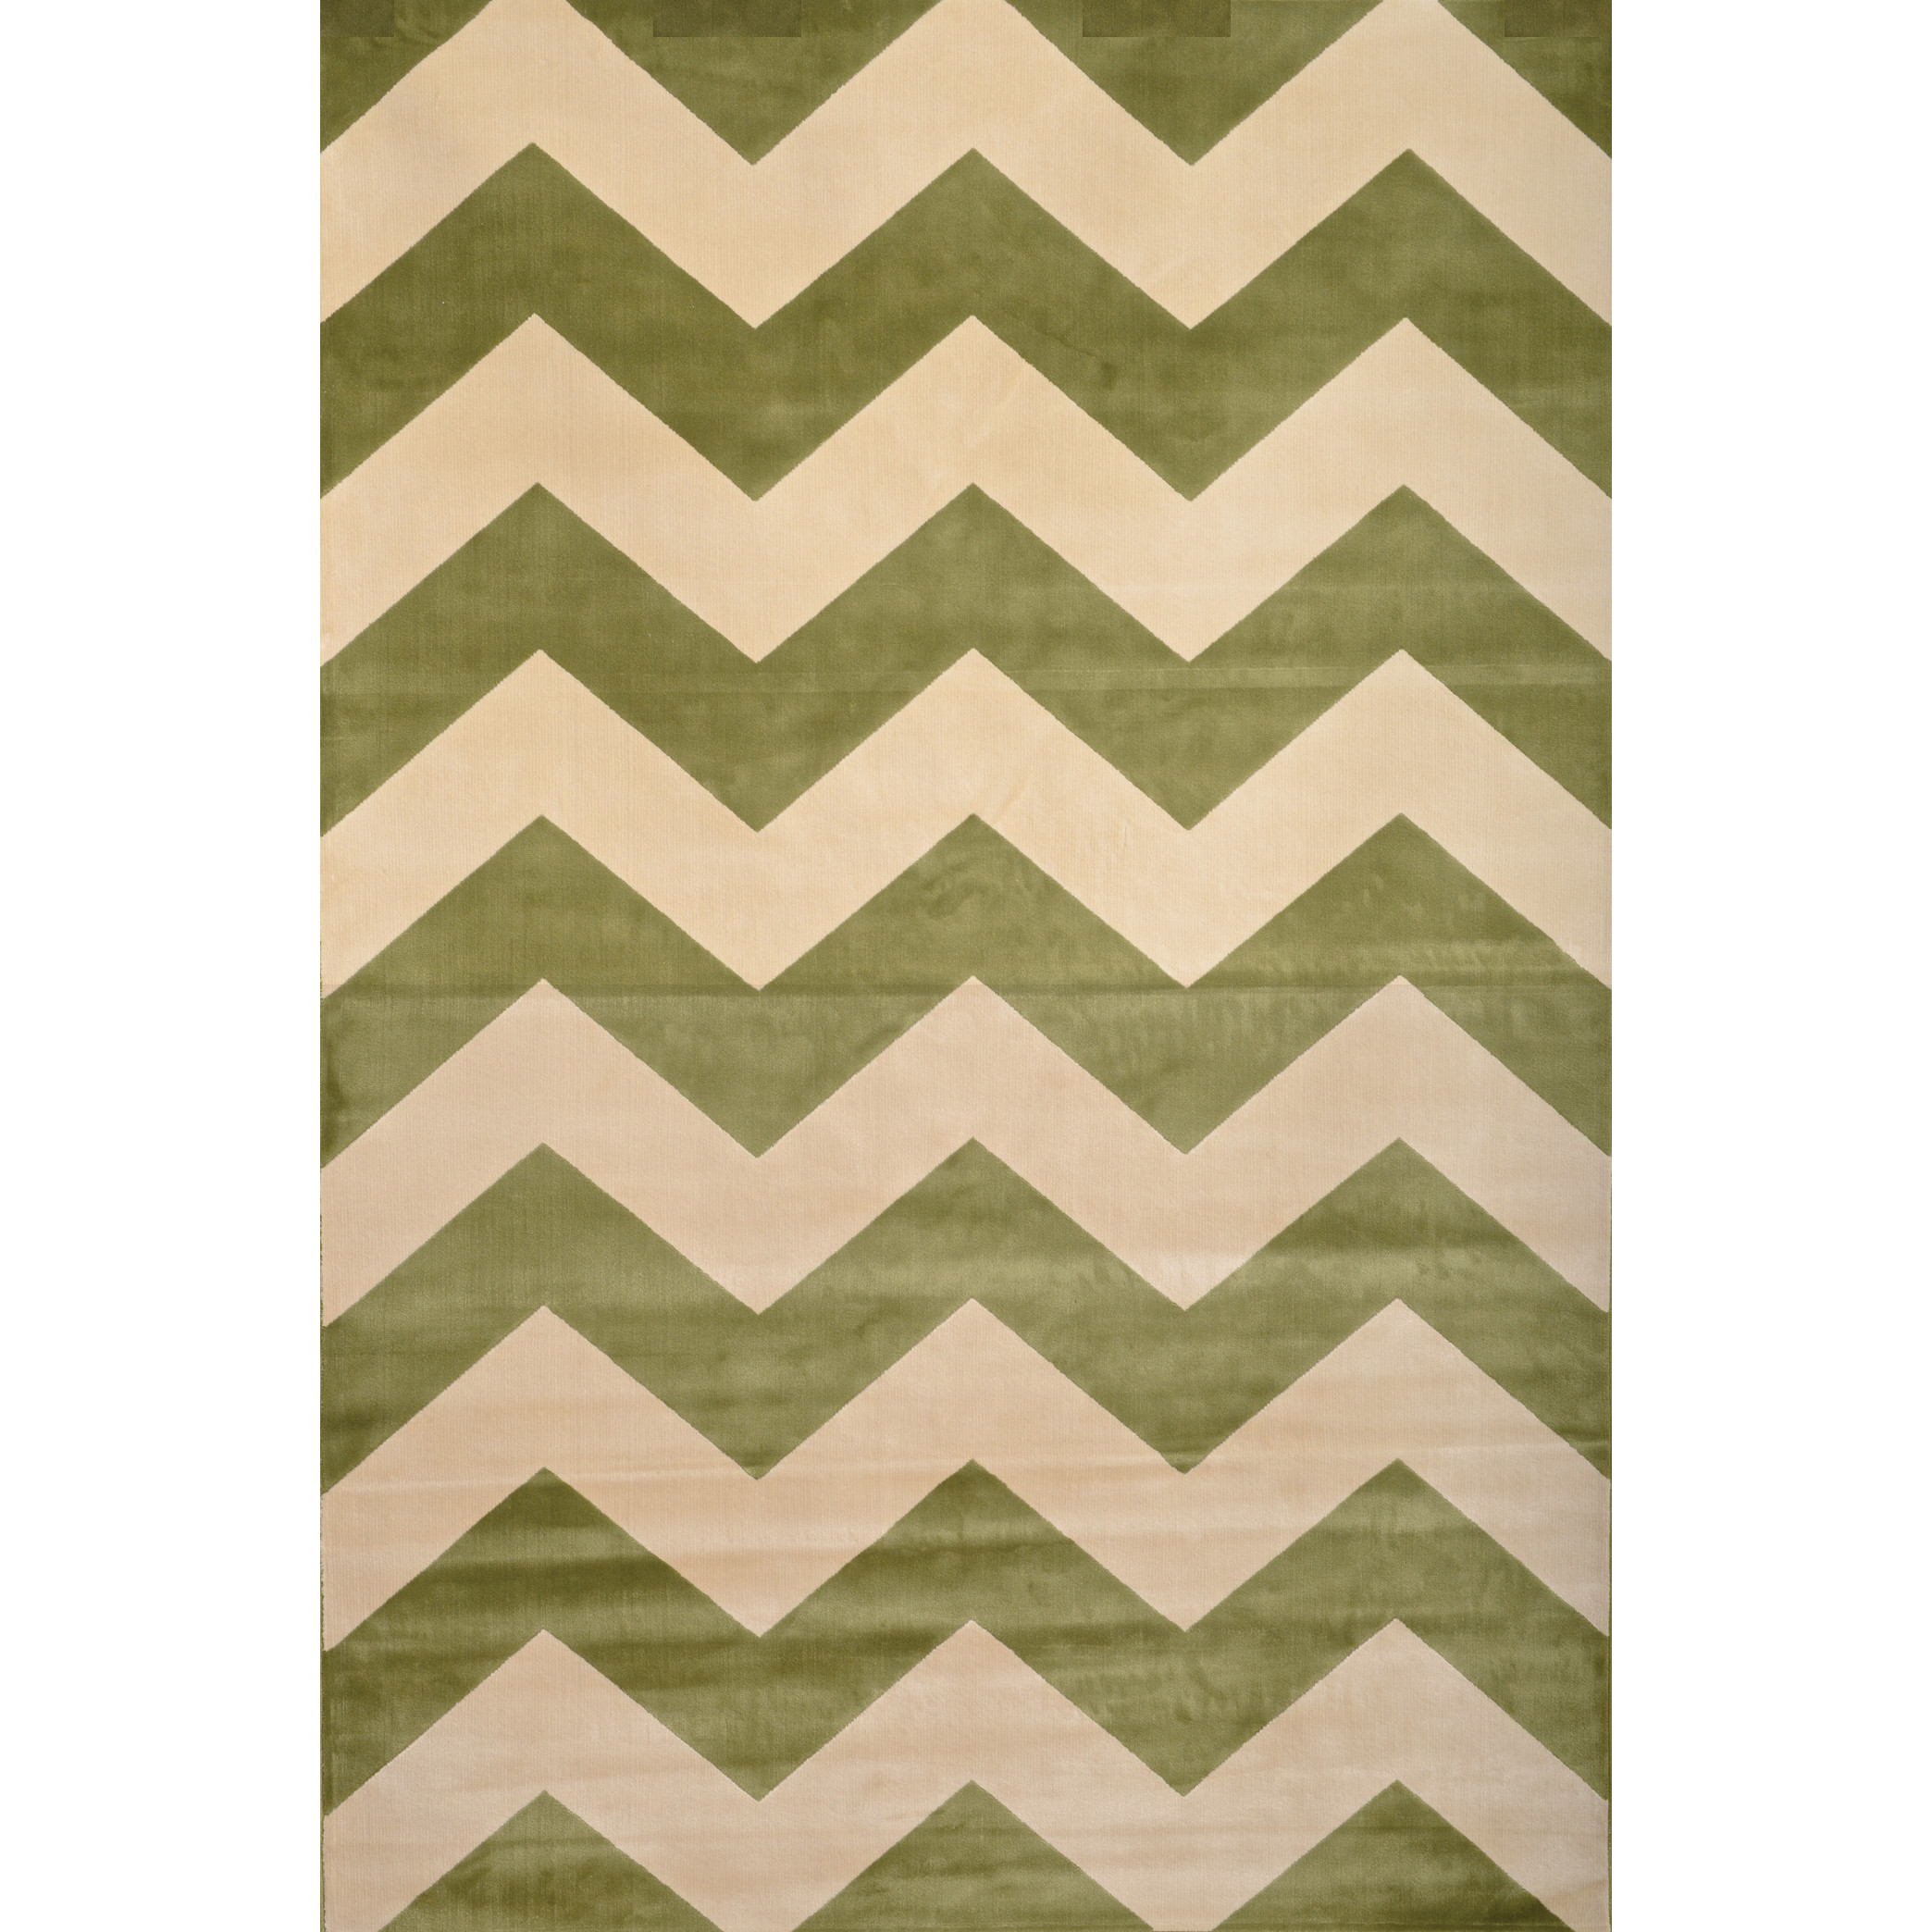 Chevron Rug | Black & White Chevron Rug | Pottery Barn Zig Zag Rug